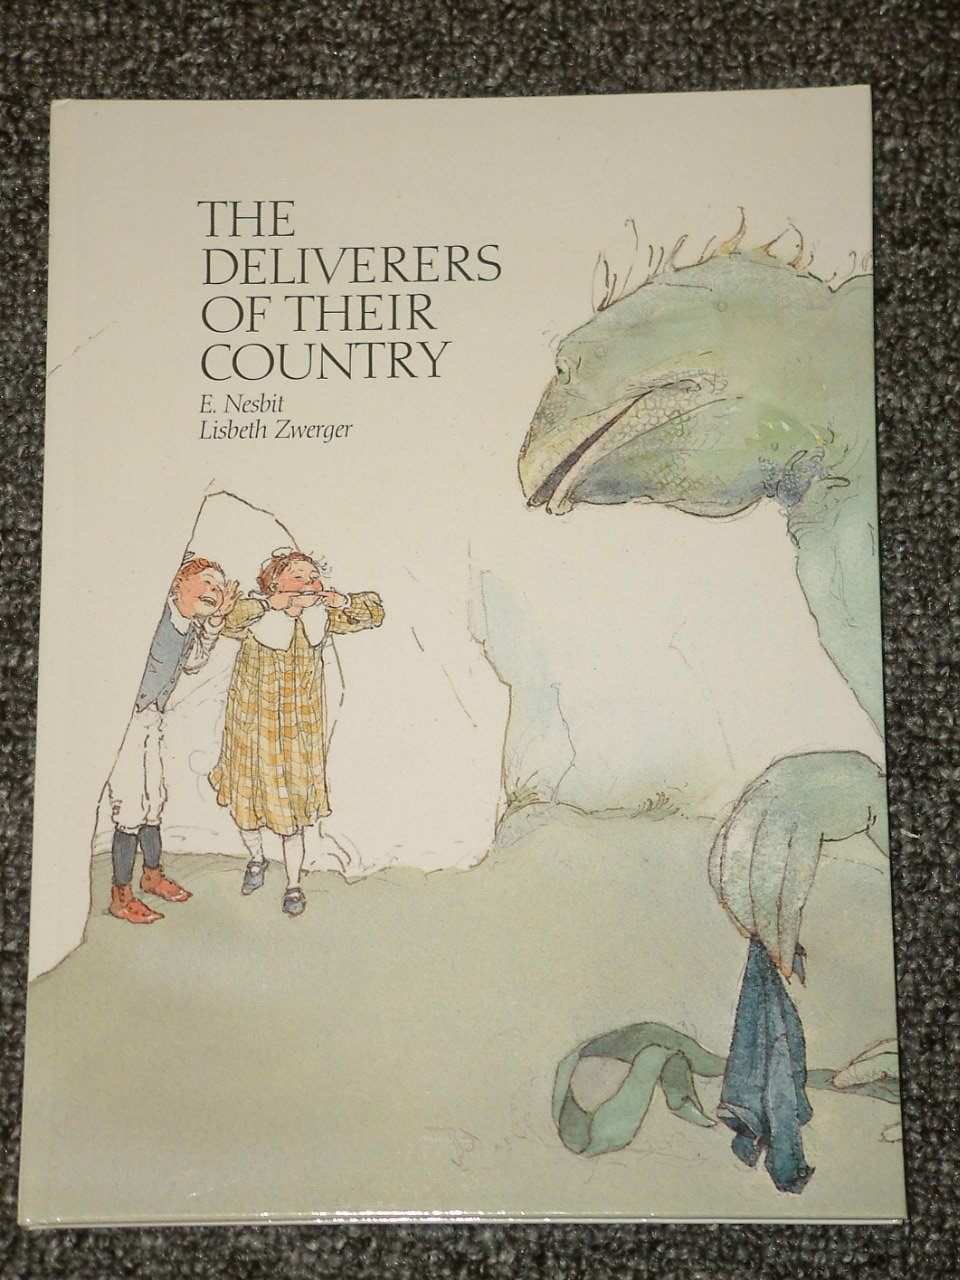 The Deliverers of Their Country by E. Nesbit